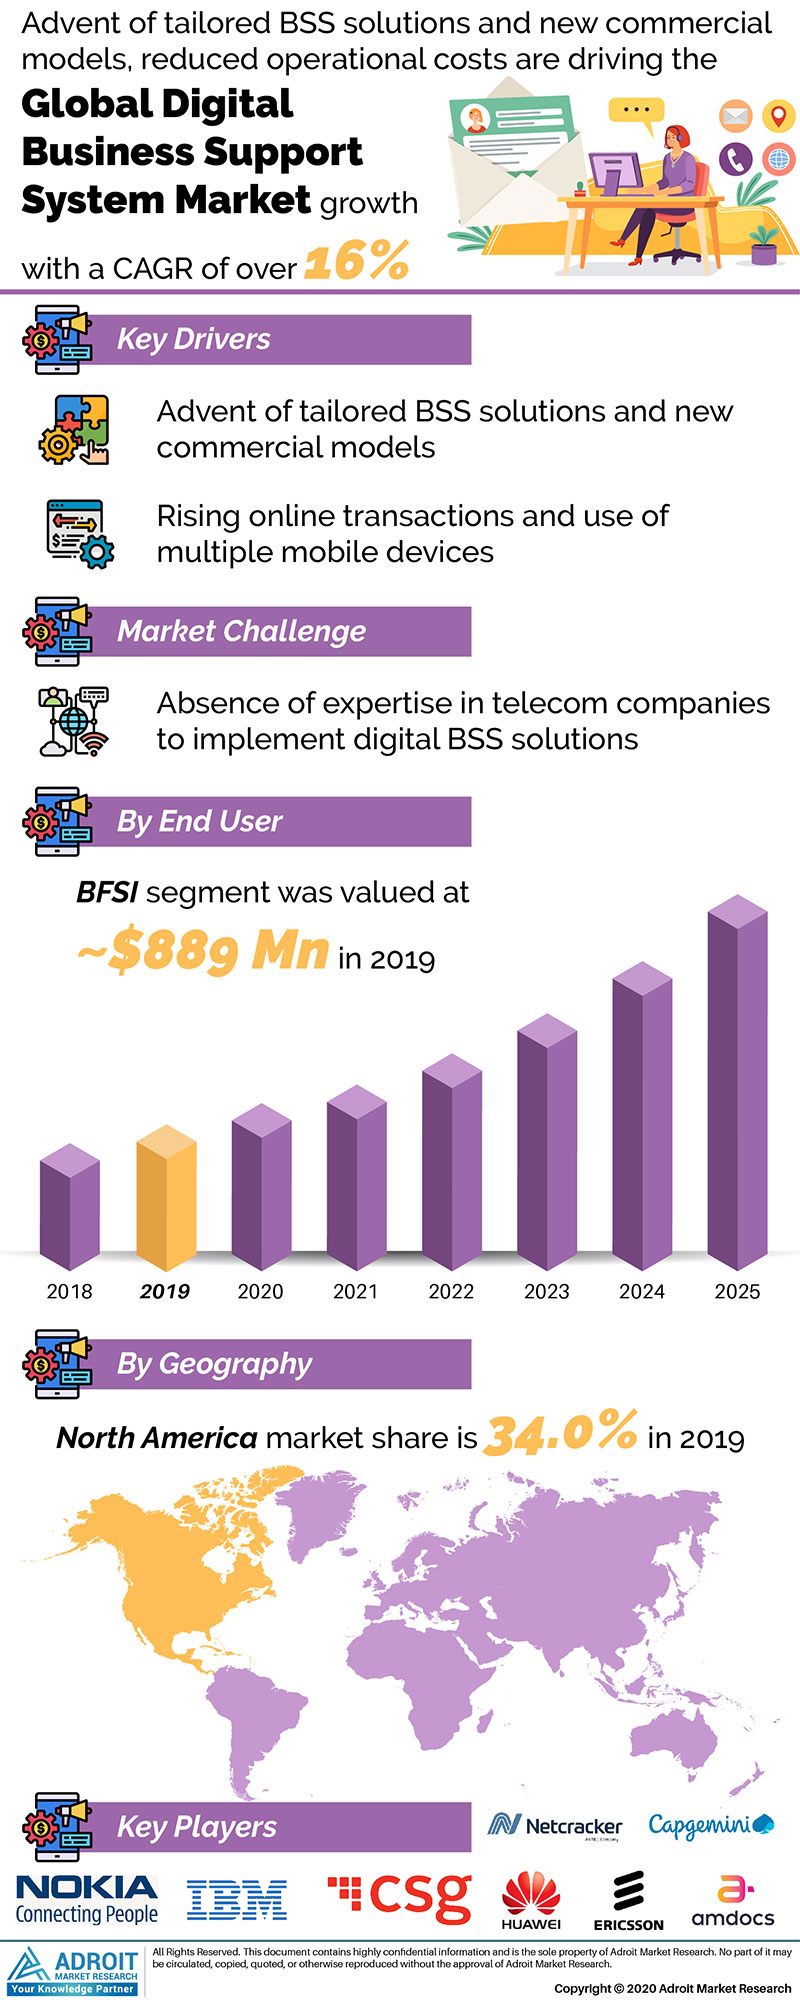 Digital Business Support System Market Size 2017 By Application, Product, Region and Forecast 2019 to 2025